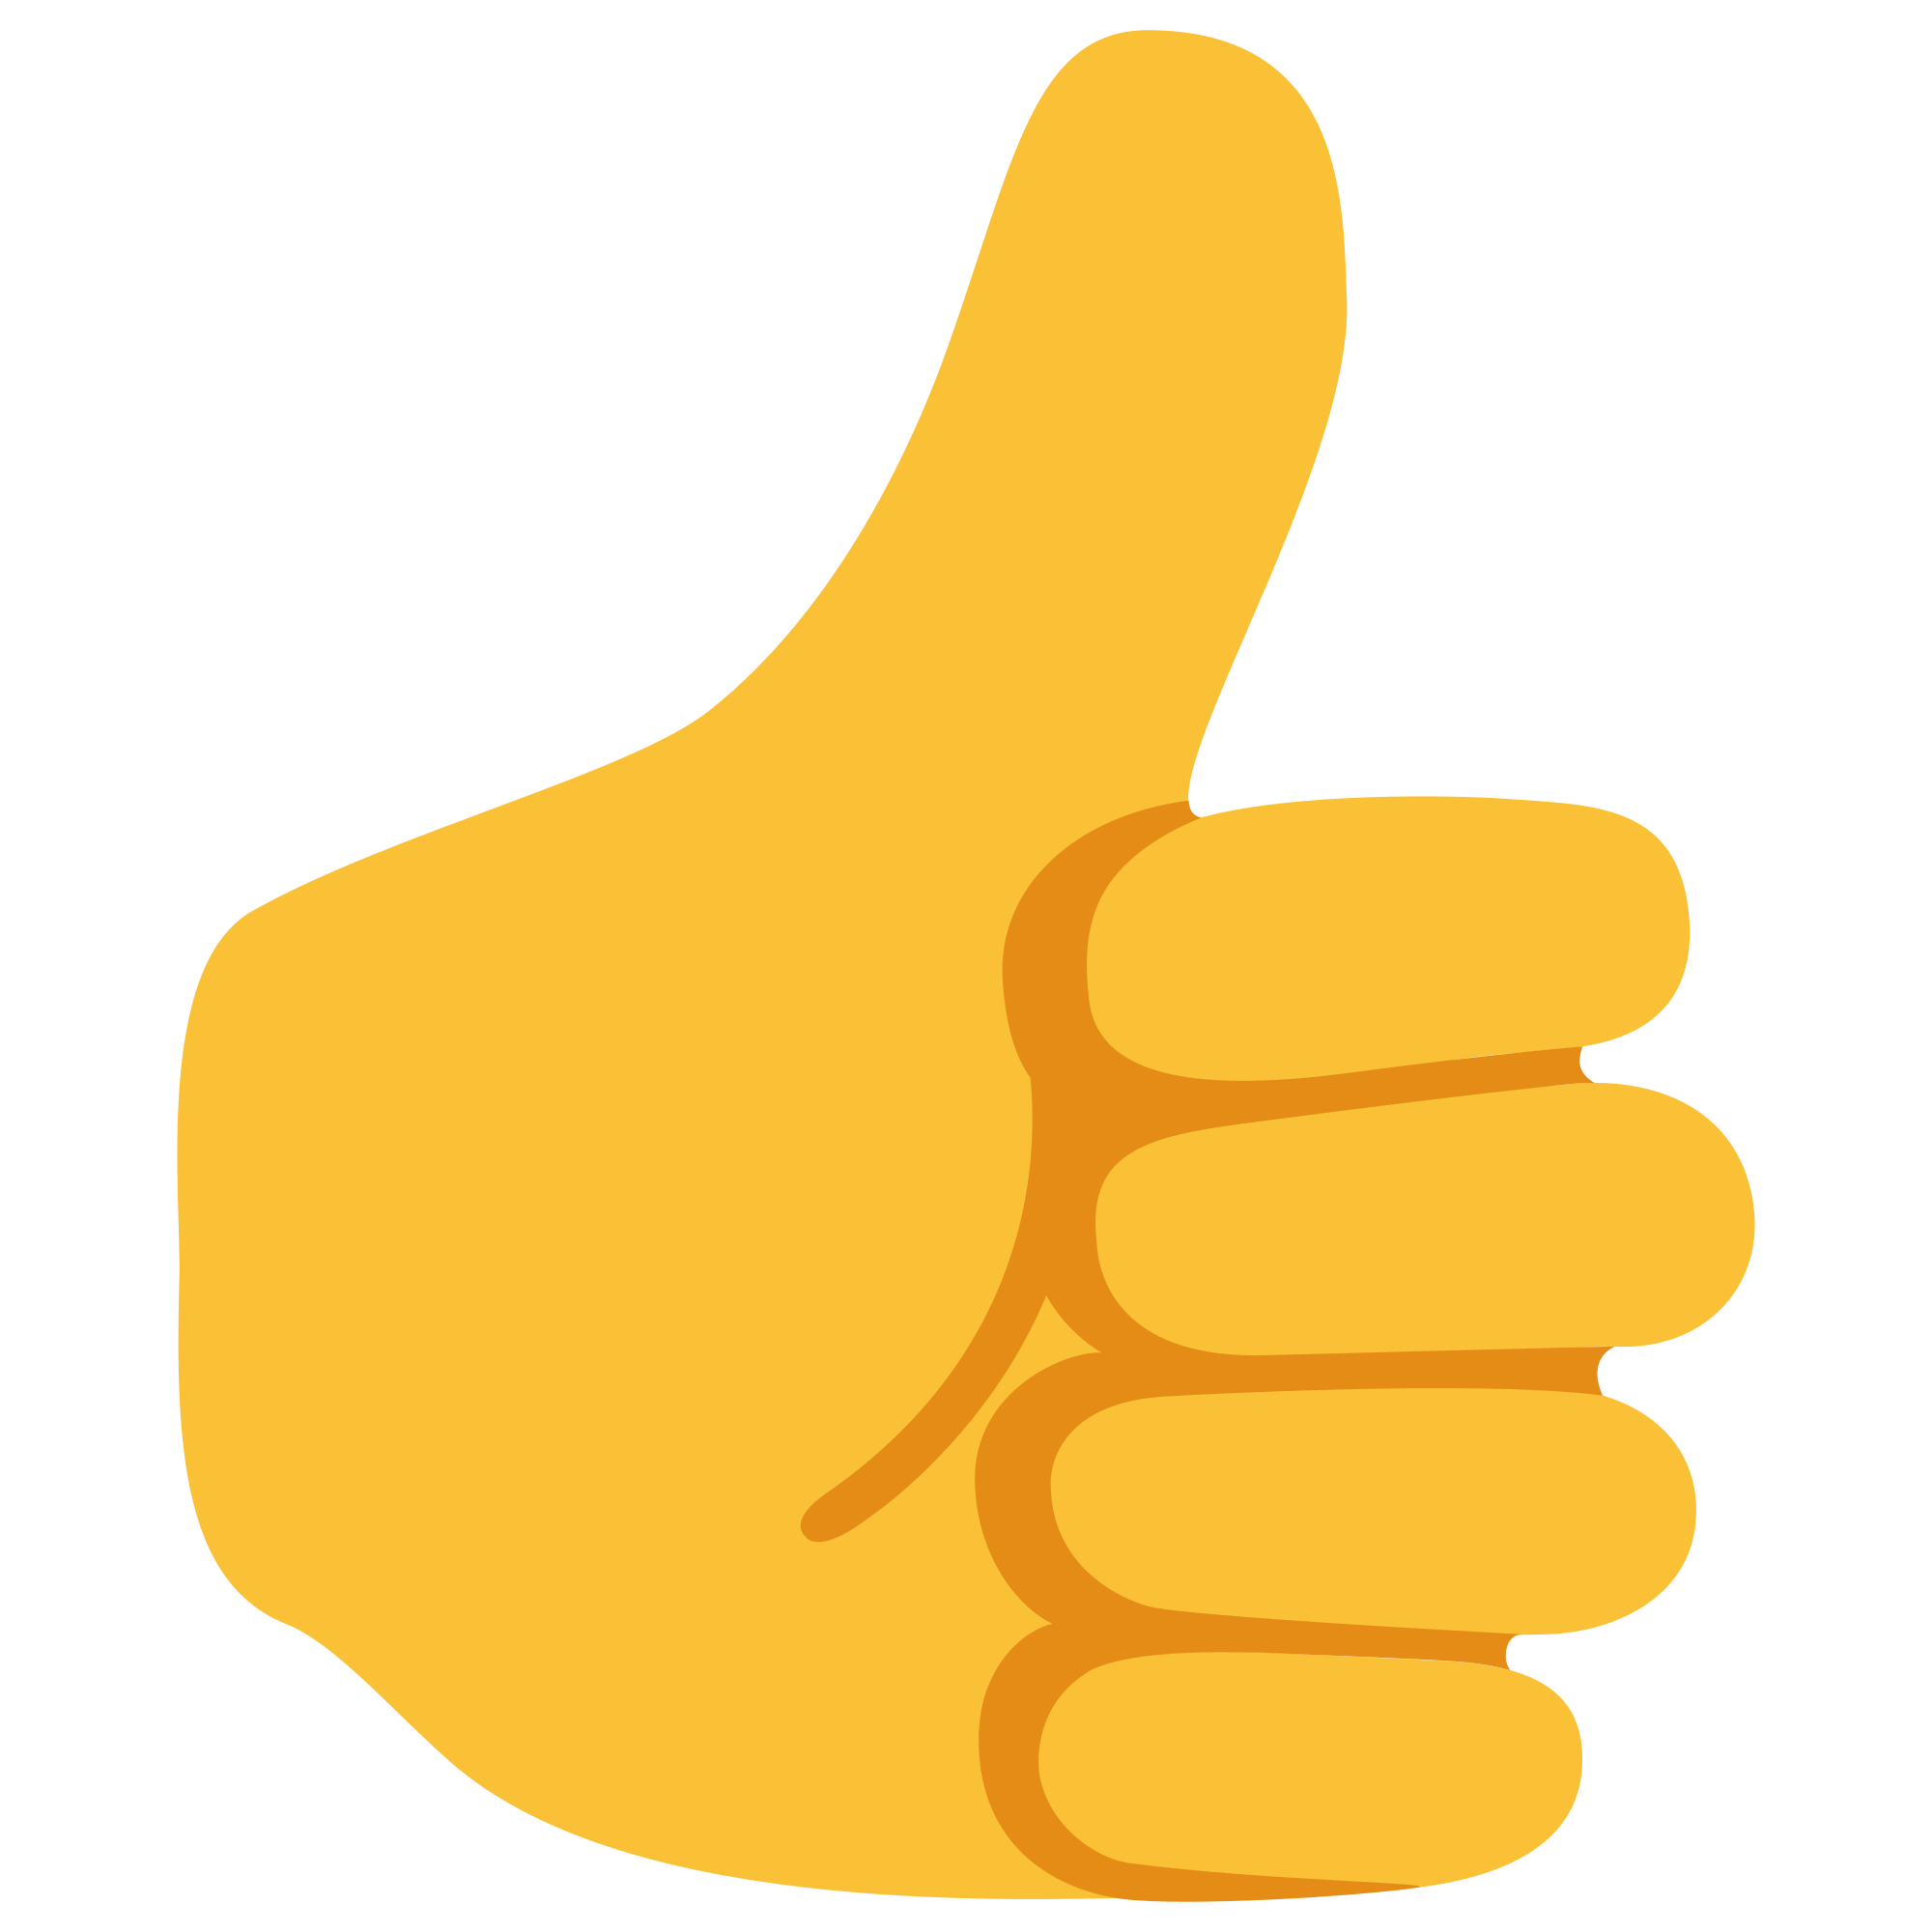 Thumbs Up Png images collection for free download.